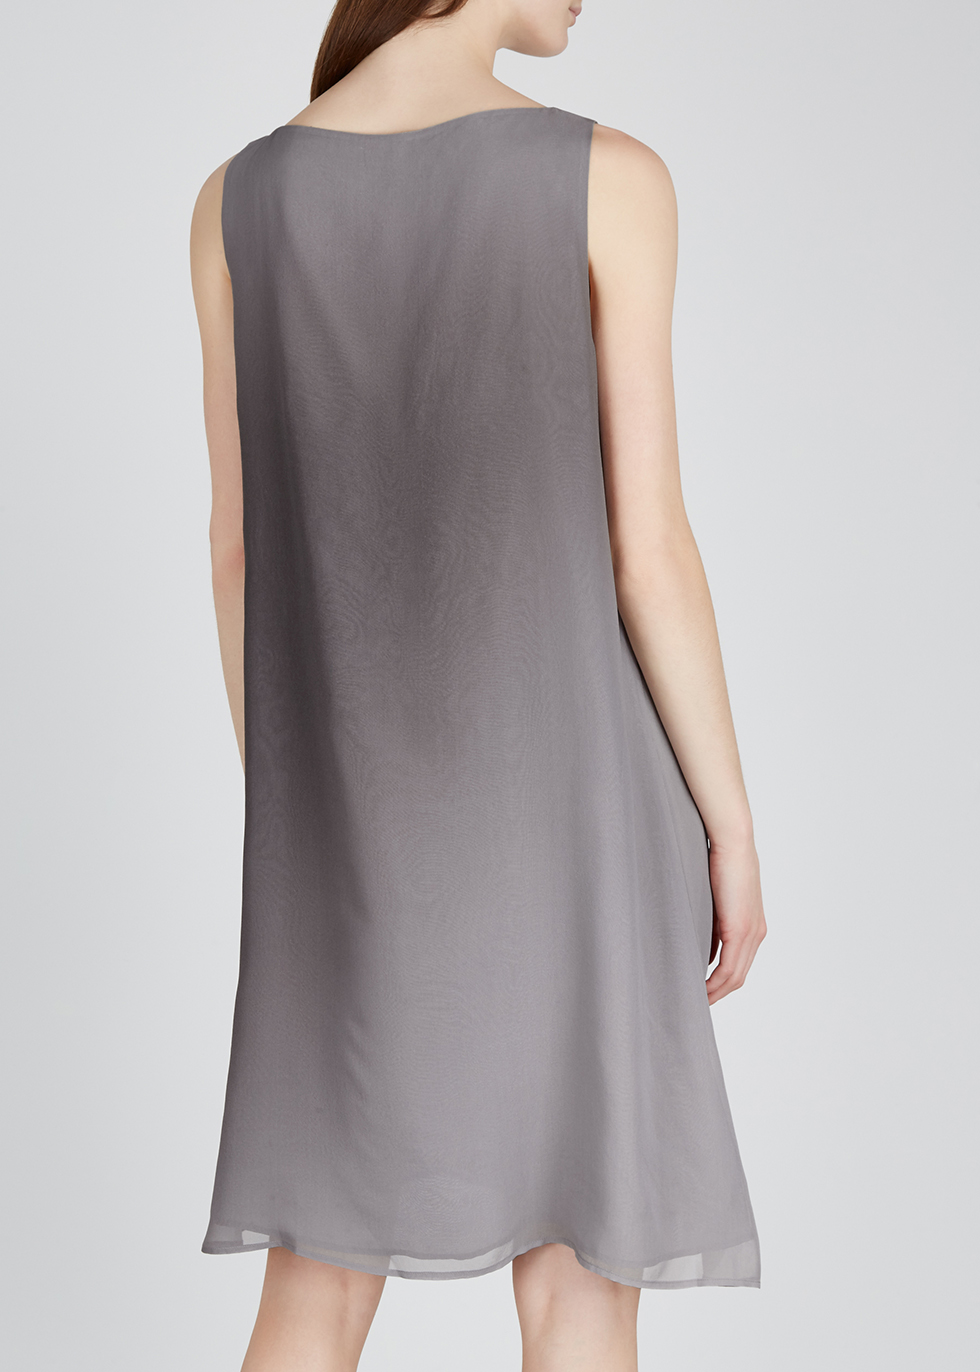 Grey dégradé silk dress - EILEEN FISHER